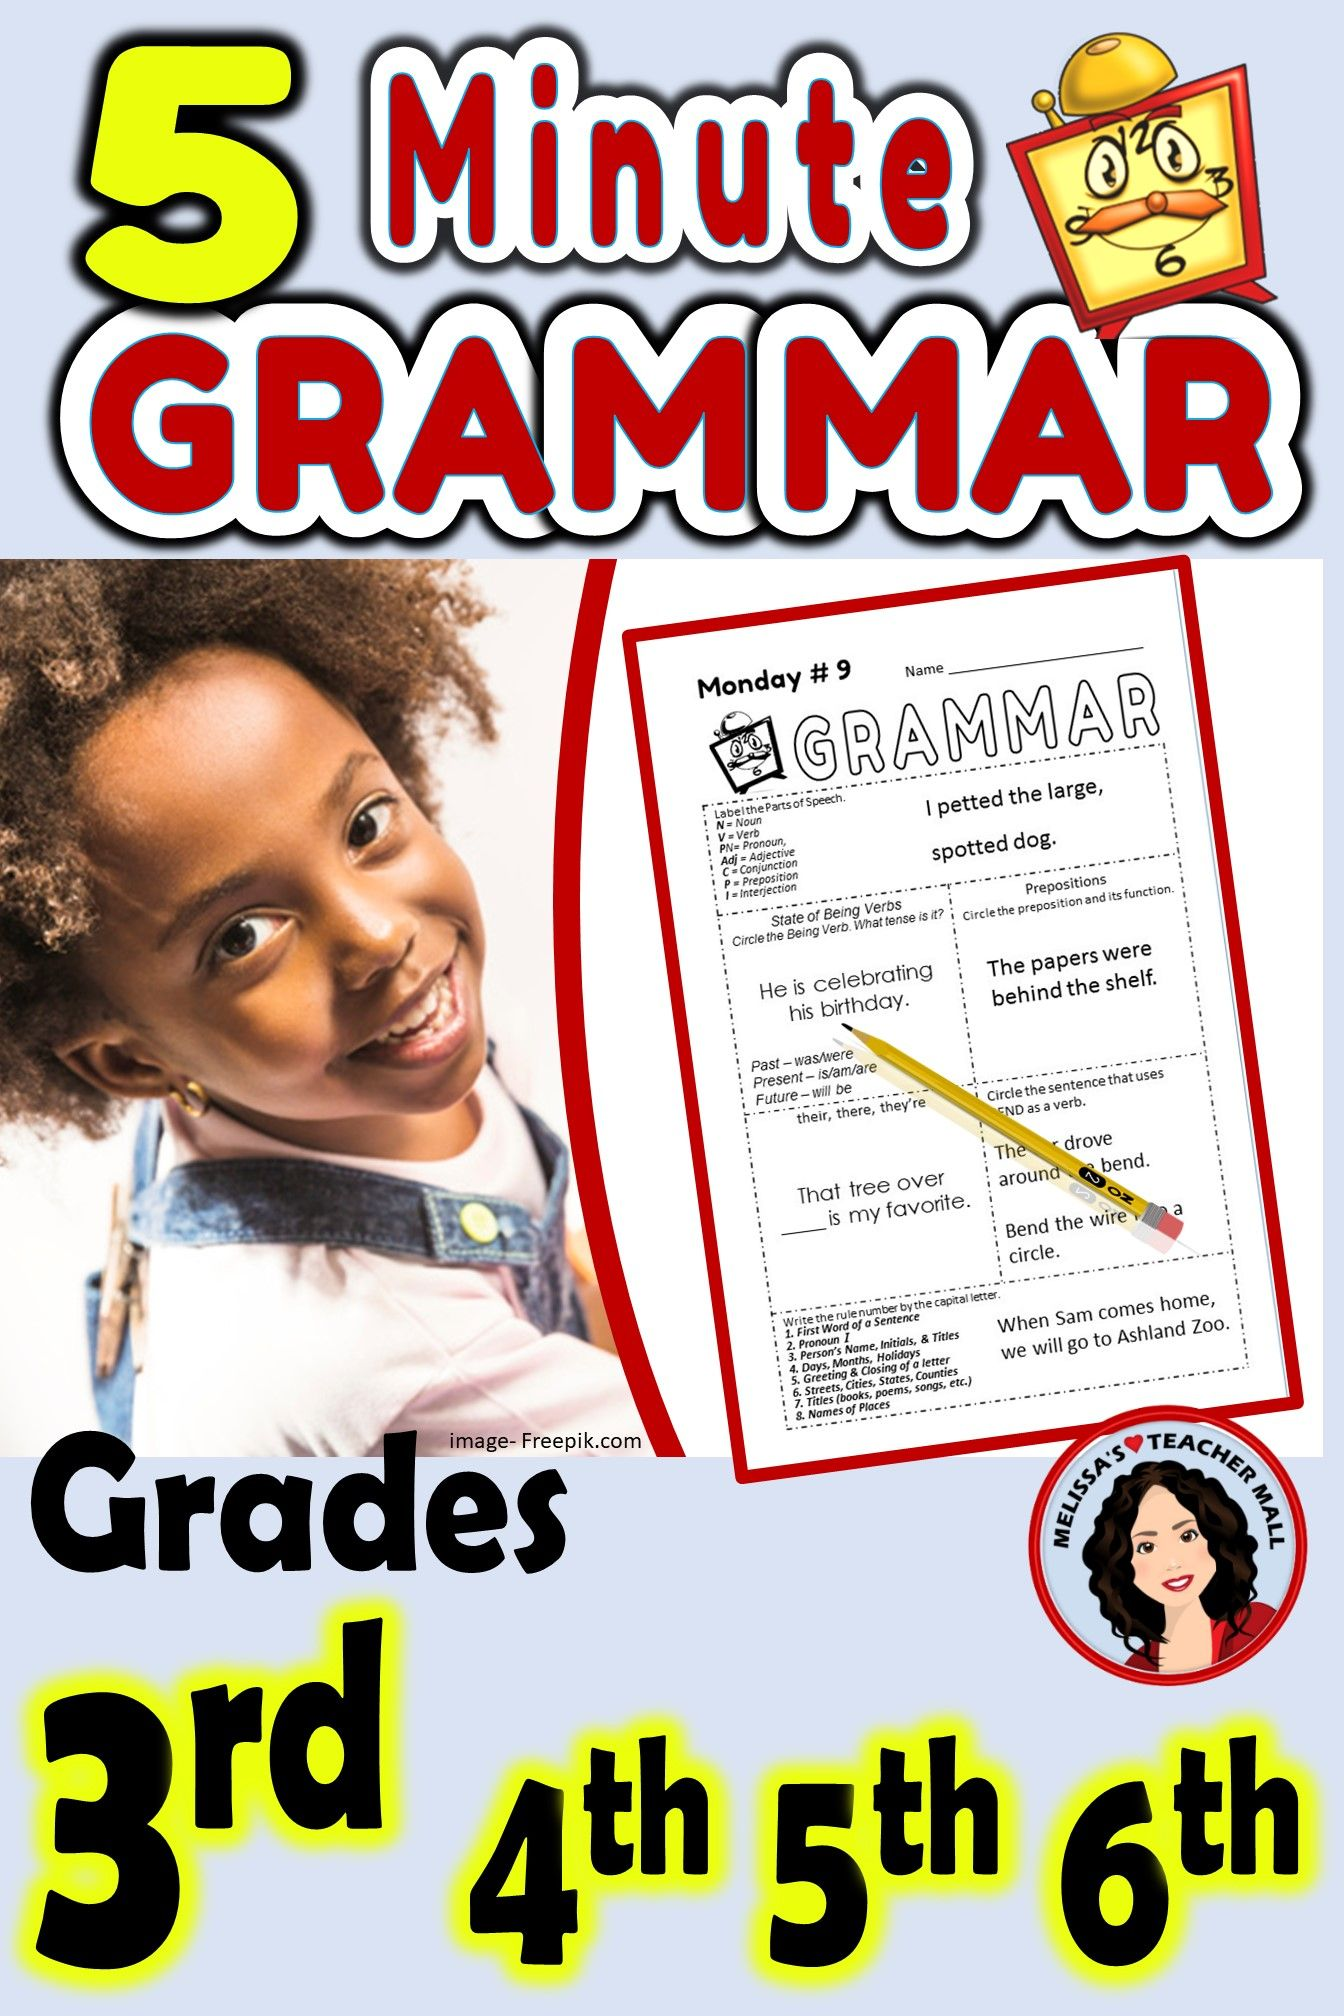 medium resolution of 5 Minute Grammar Daily Grammar Worksheets 3rd GRADE Practice and Assessment    Grammar worksheets